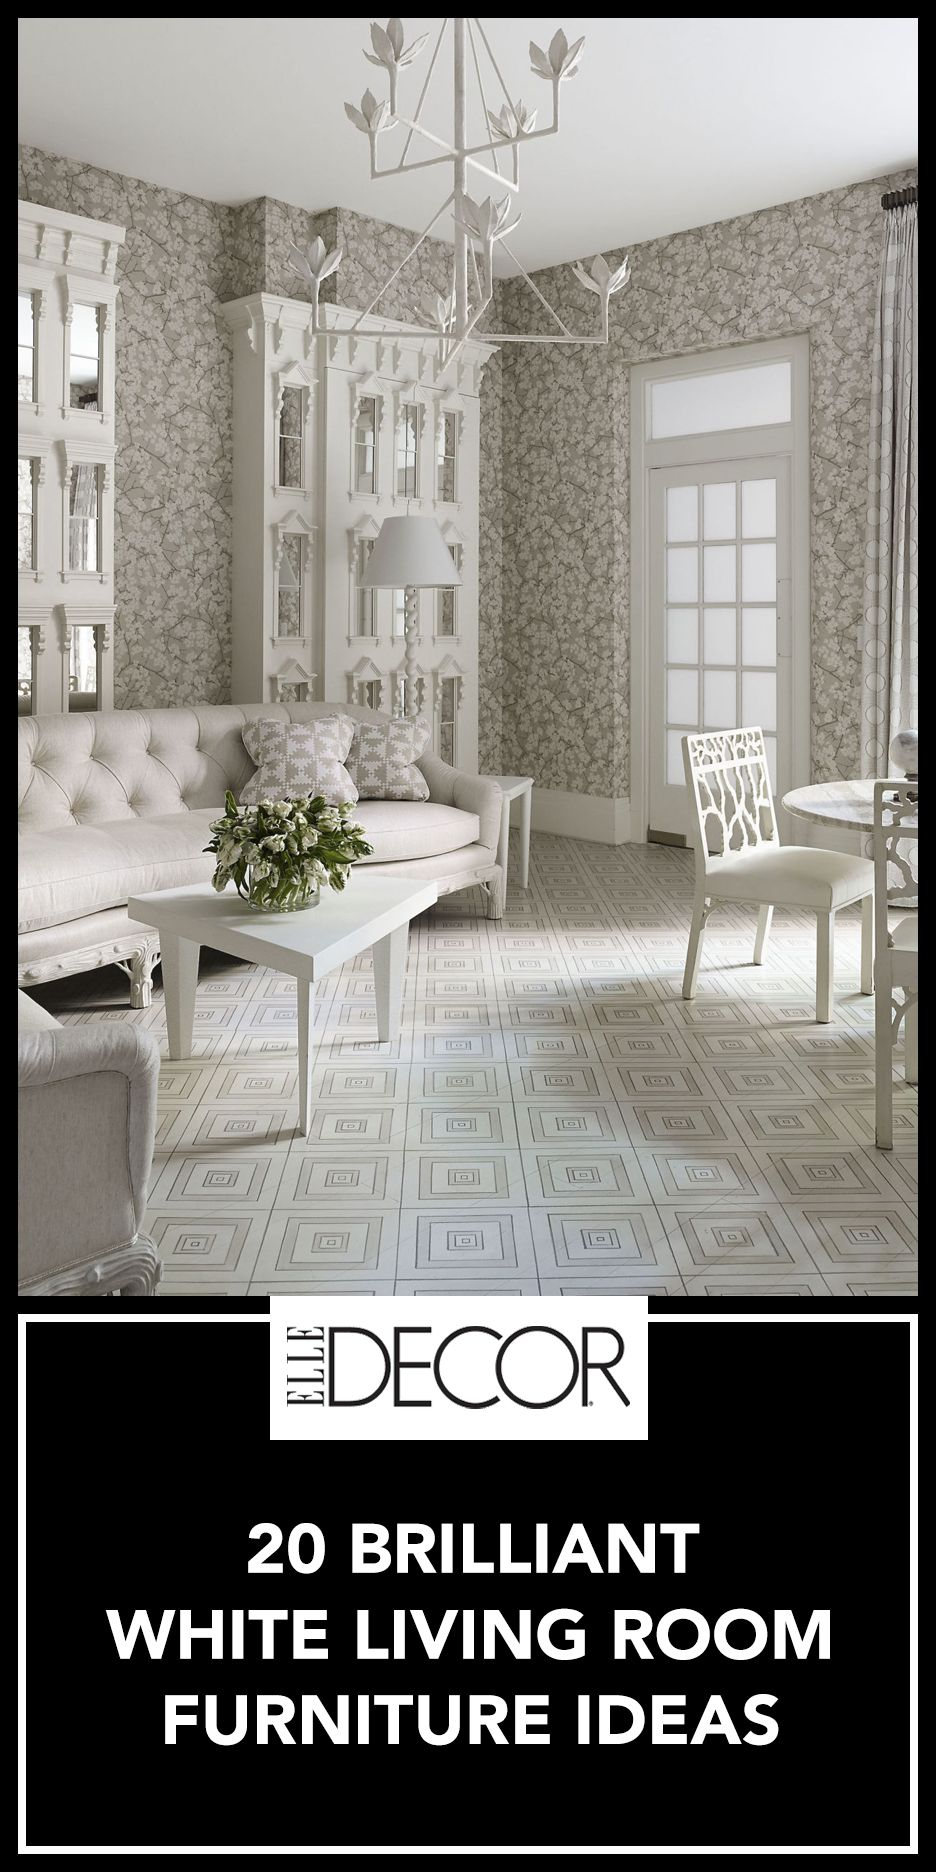 furniture sofa decorate design sag tips living harbor ideas sofas room livings best decorating home white for